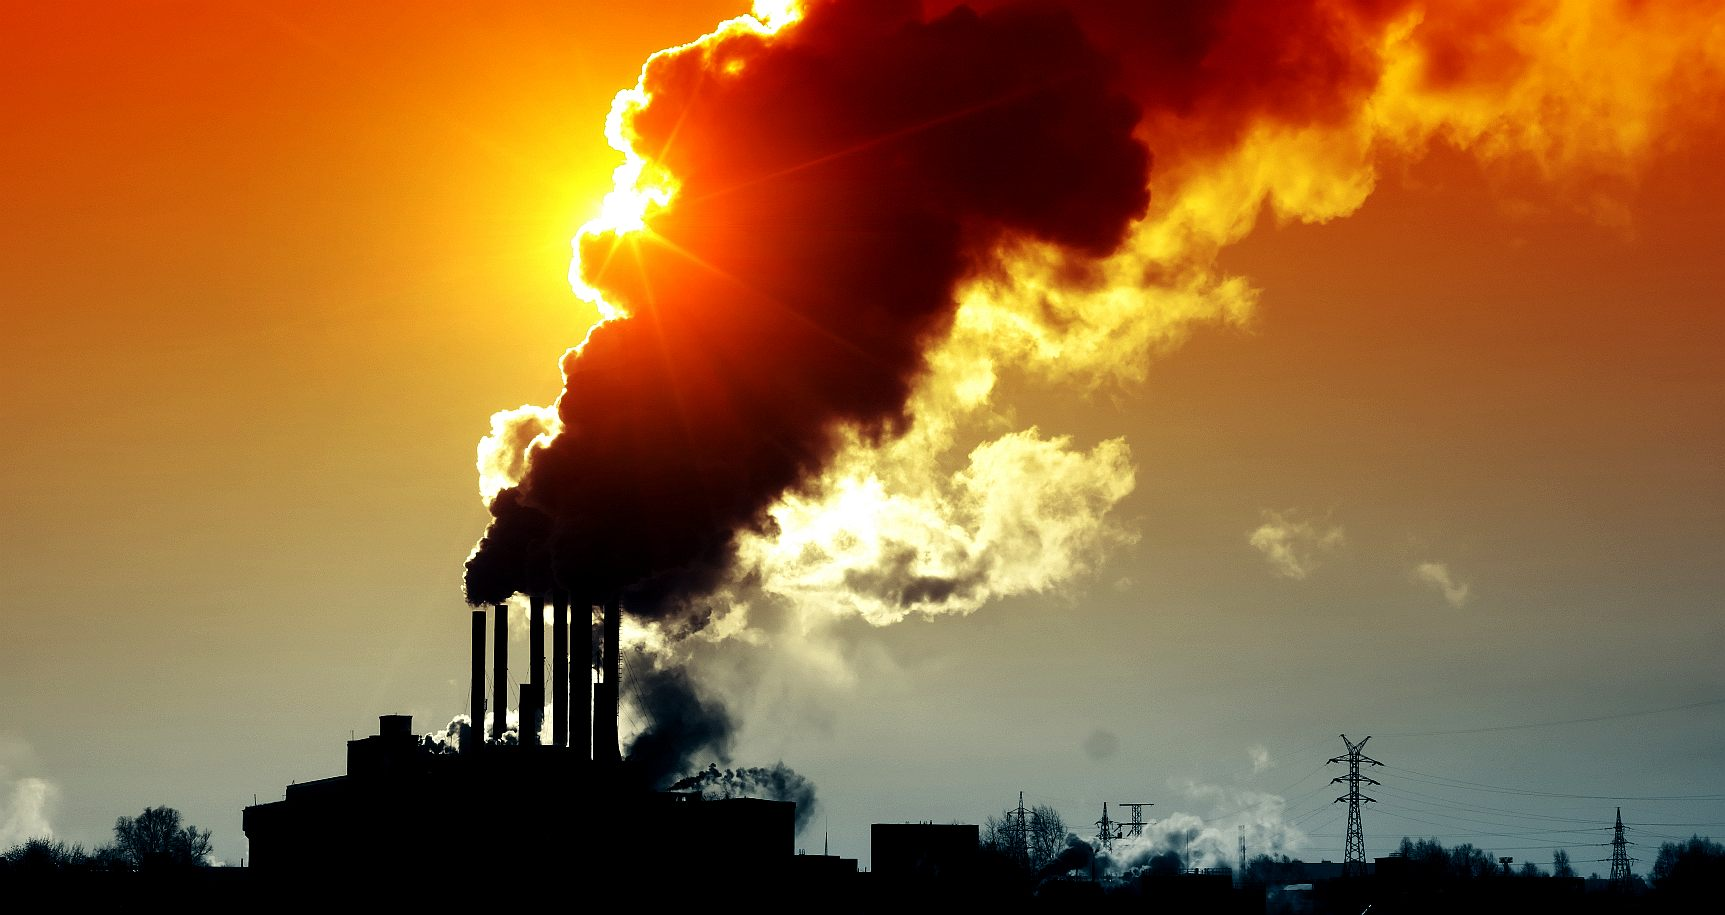 Factories churn out greenhouse gases by the bucket load